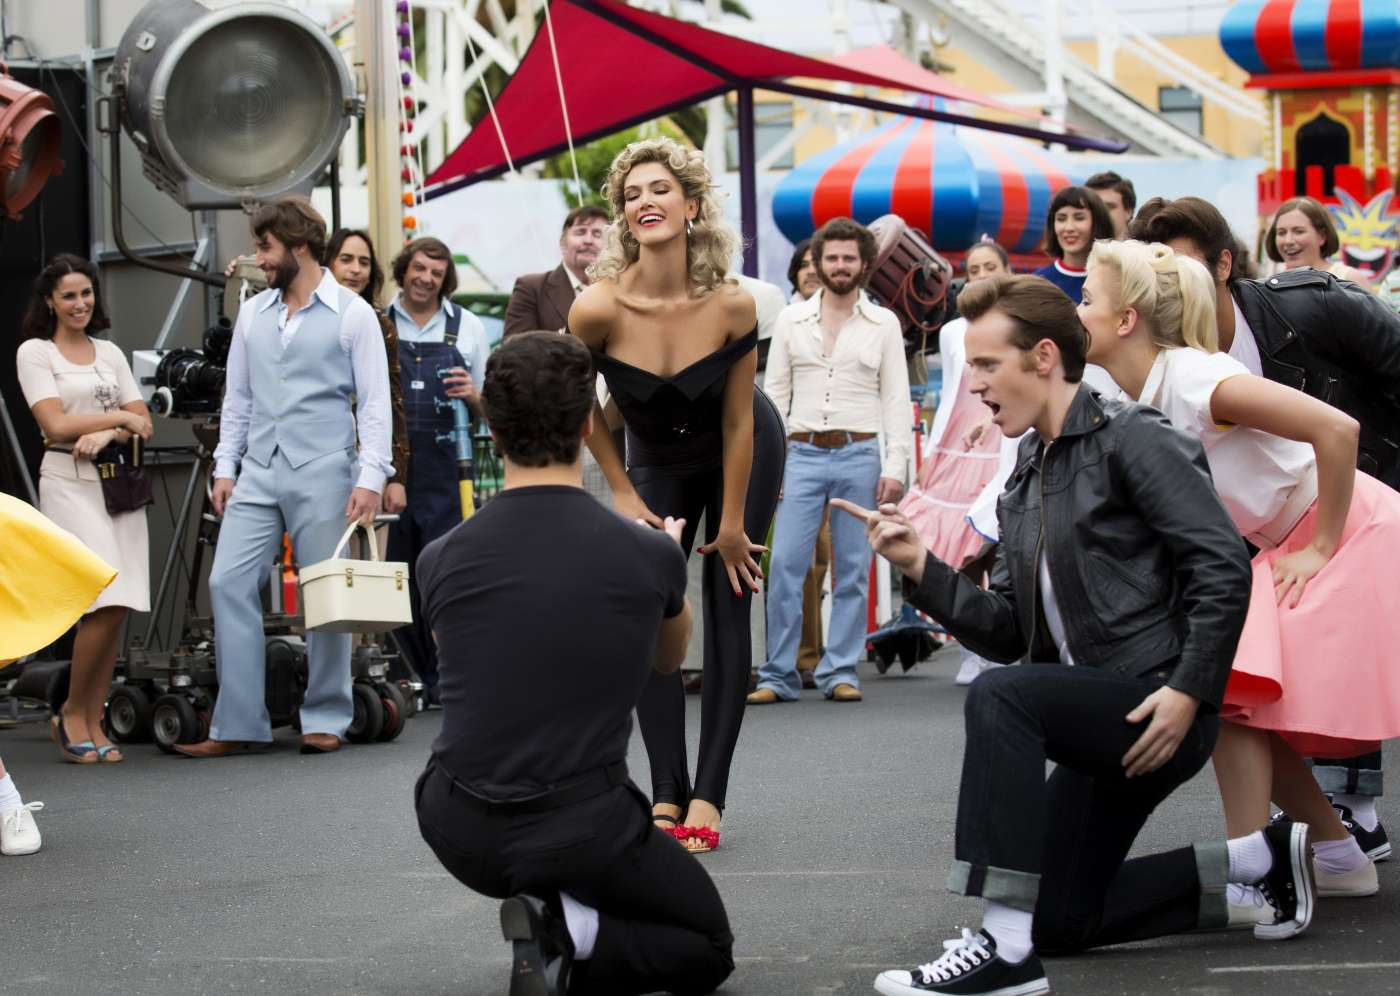 Olivia Newton John First Look Delta Goodrem As On The Set Of Grease Cr Kelly Gardner Itok Friday Events Planned For